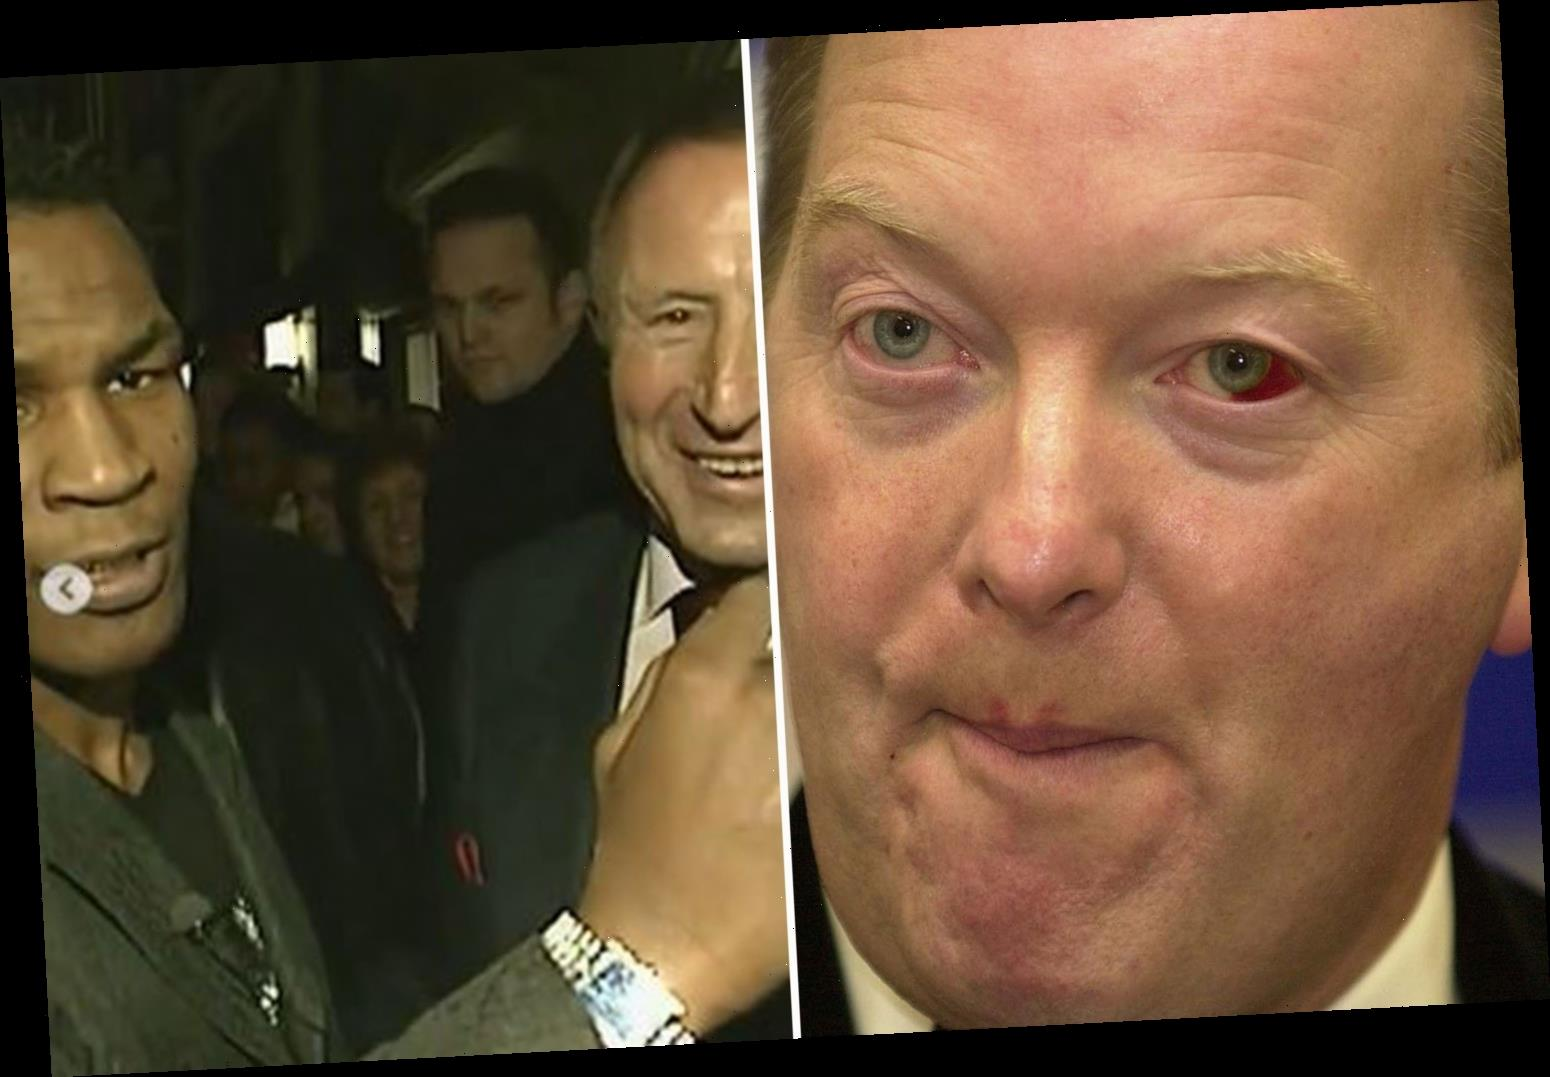 Frank Warren reveals what REALLY happened after being floored by Mike Tyson with punch in hotel bust-up over jewellery